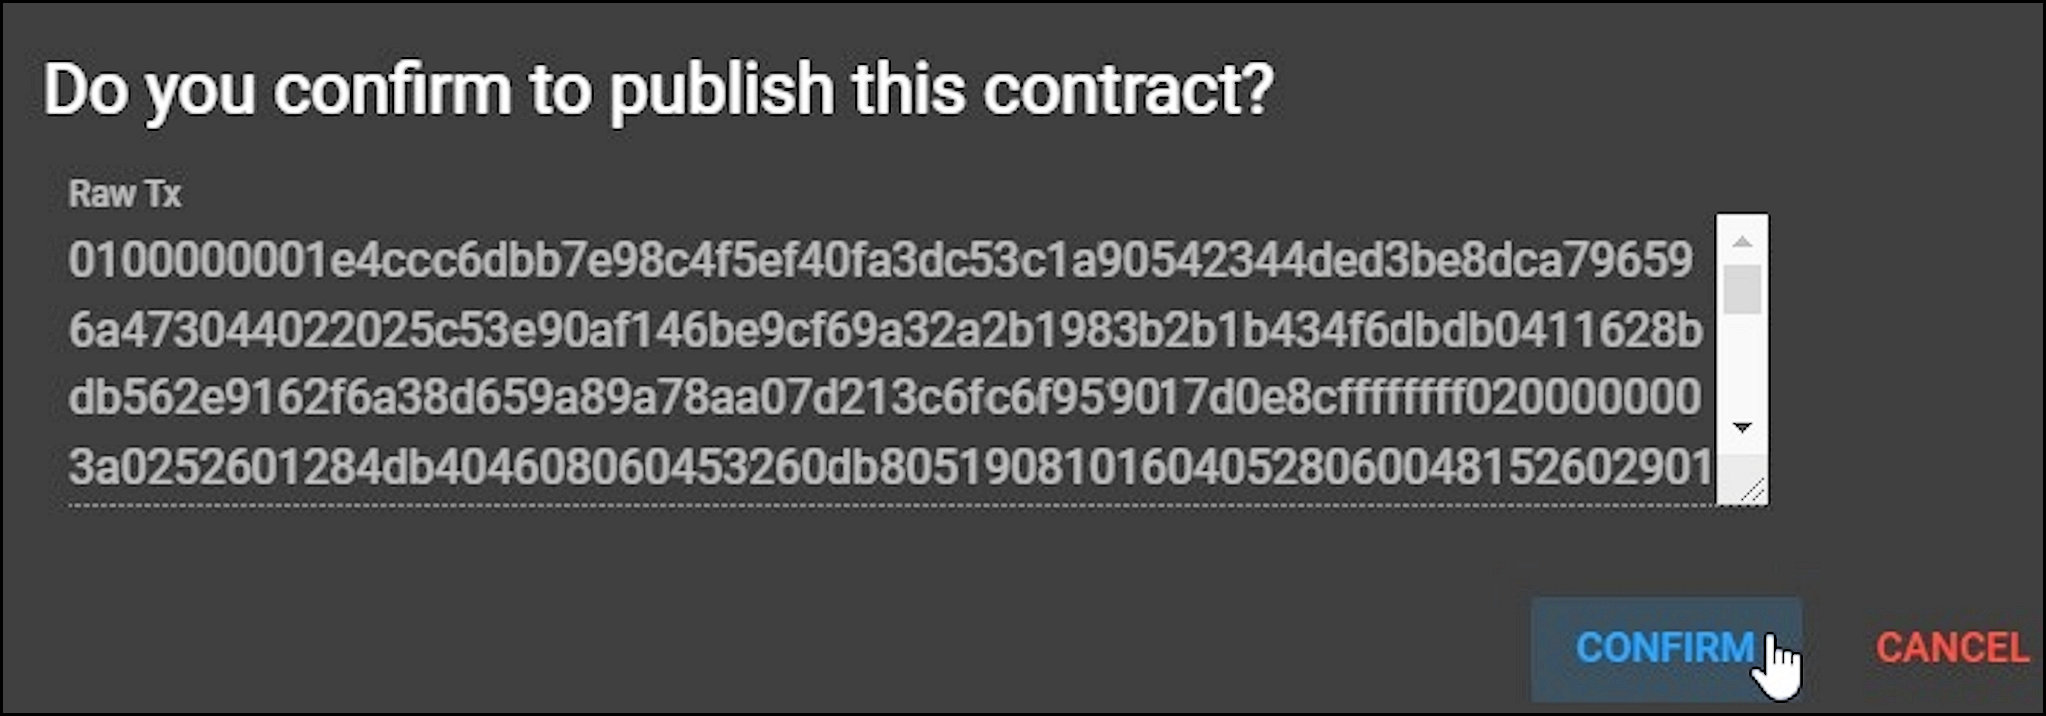 2019-16 Do you confirm to publish this contract